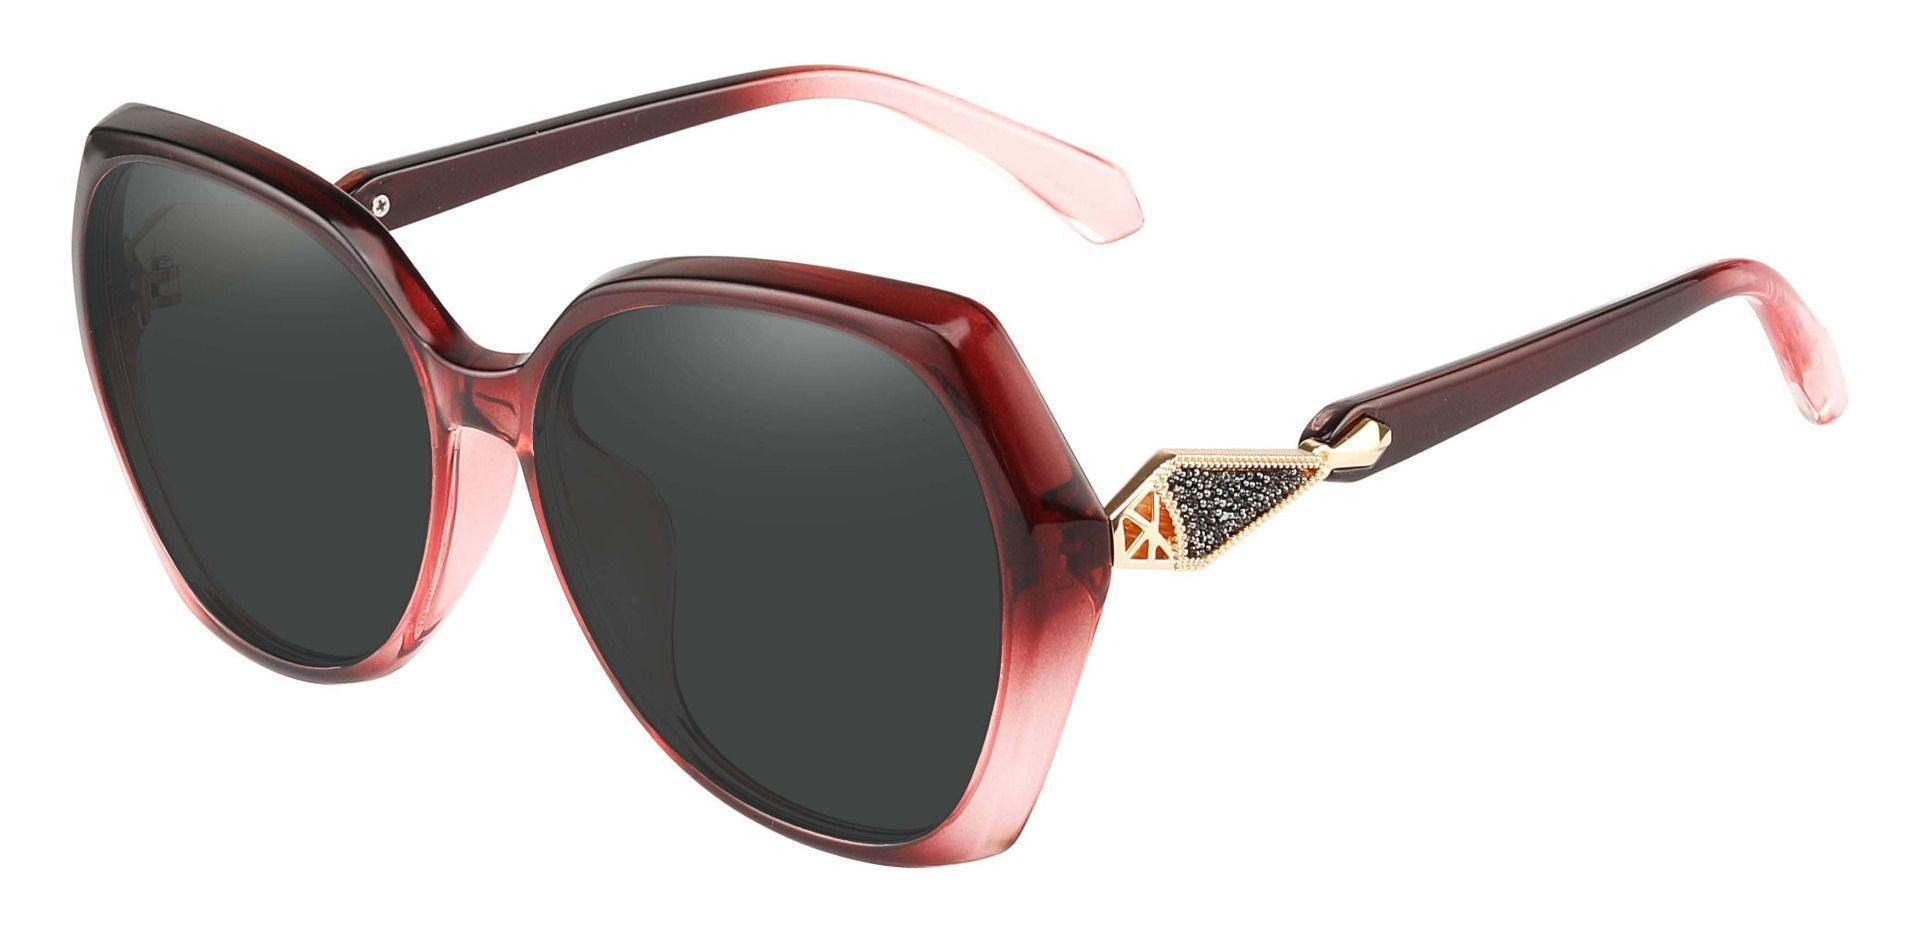 Solitaire Geometric Reading Sunglasses - Red Frame With Gray Lenses